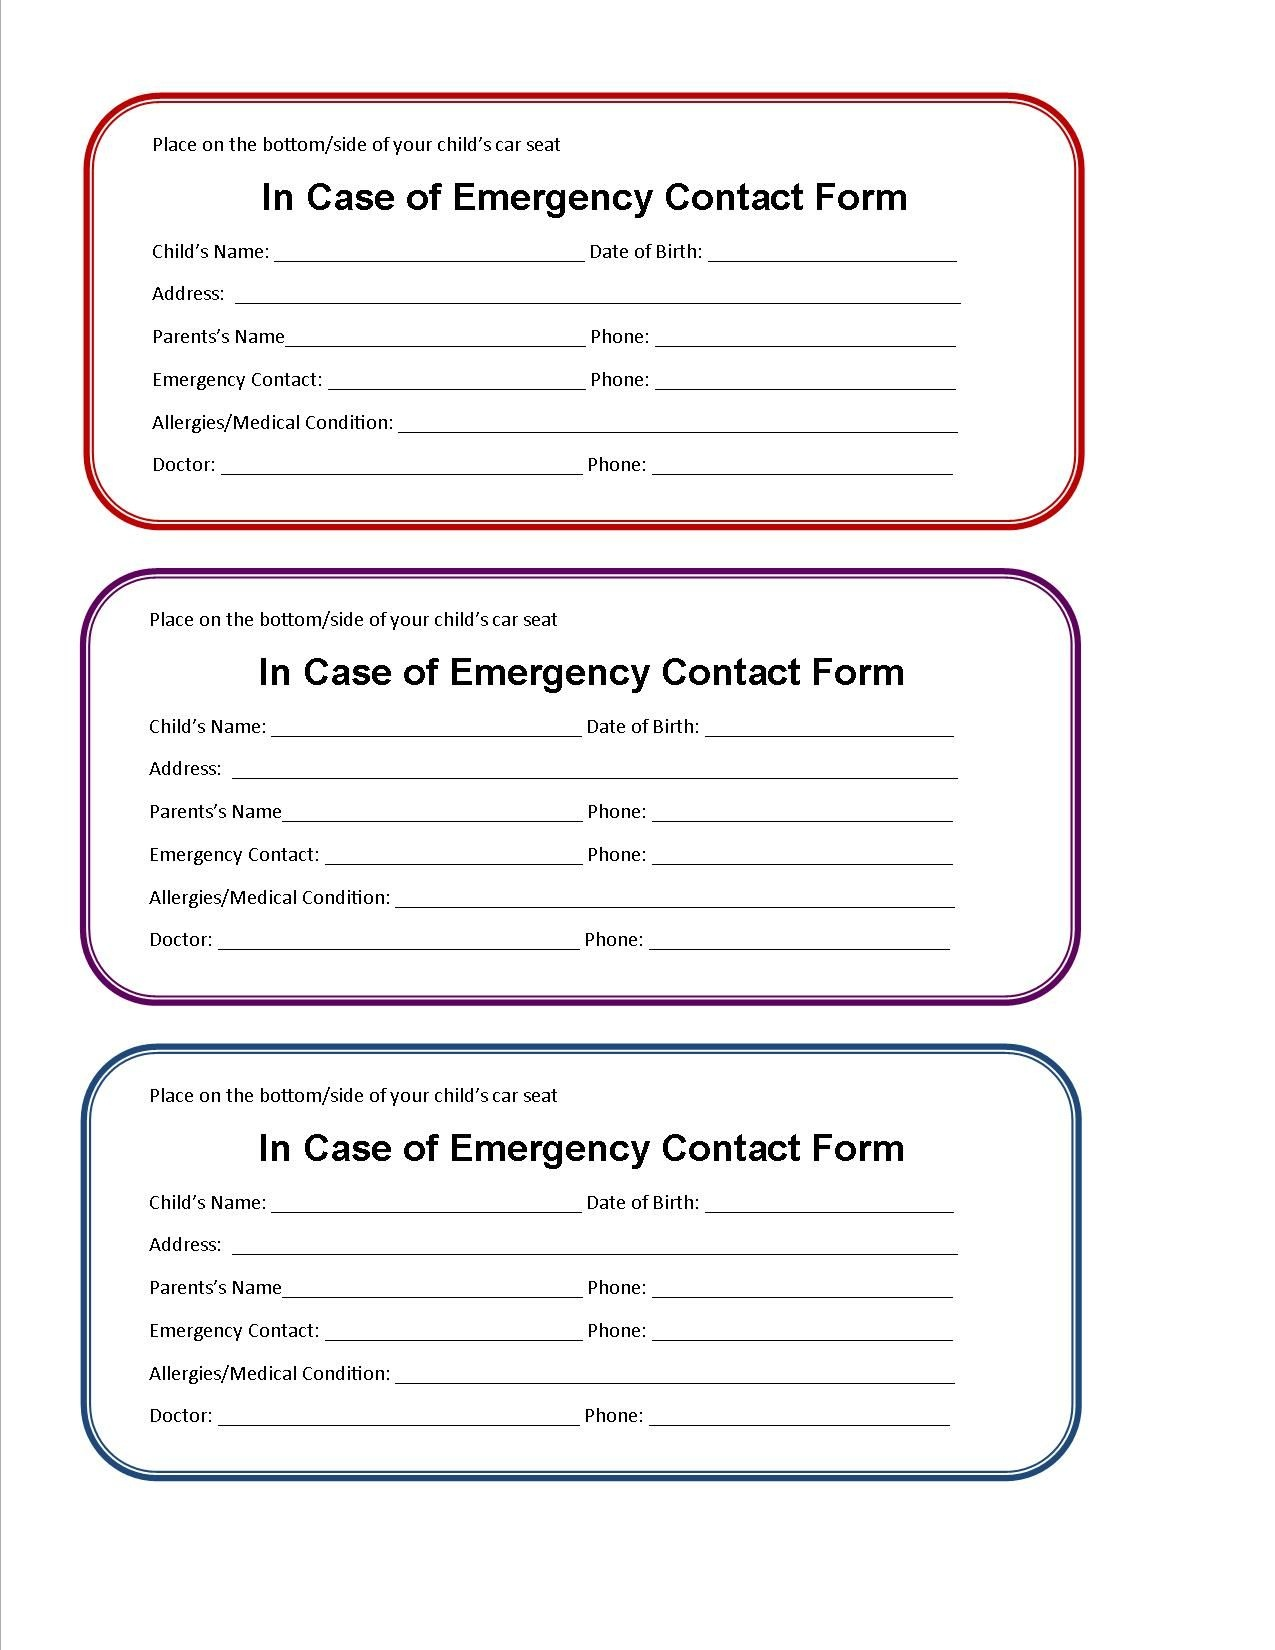 Printable Emergency Contact Form For Car Seat   Super Mom I Am - Free Printable Child Identification Card